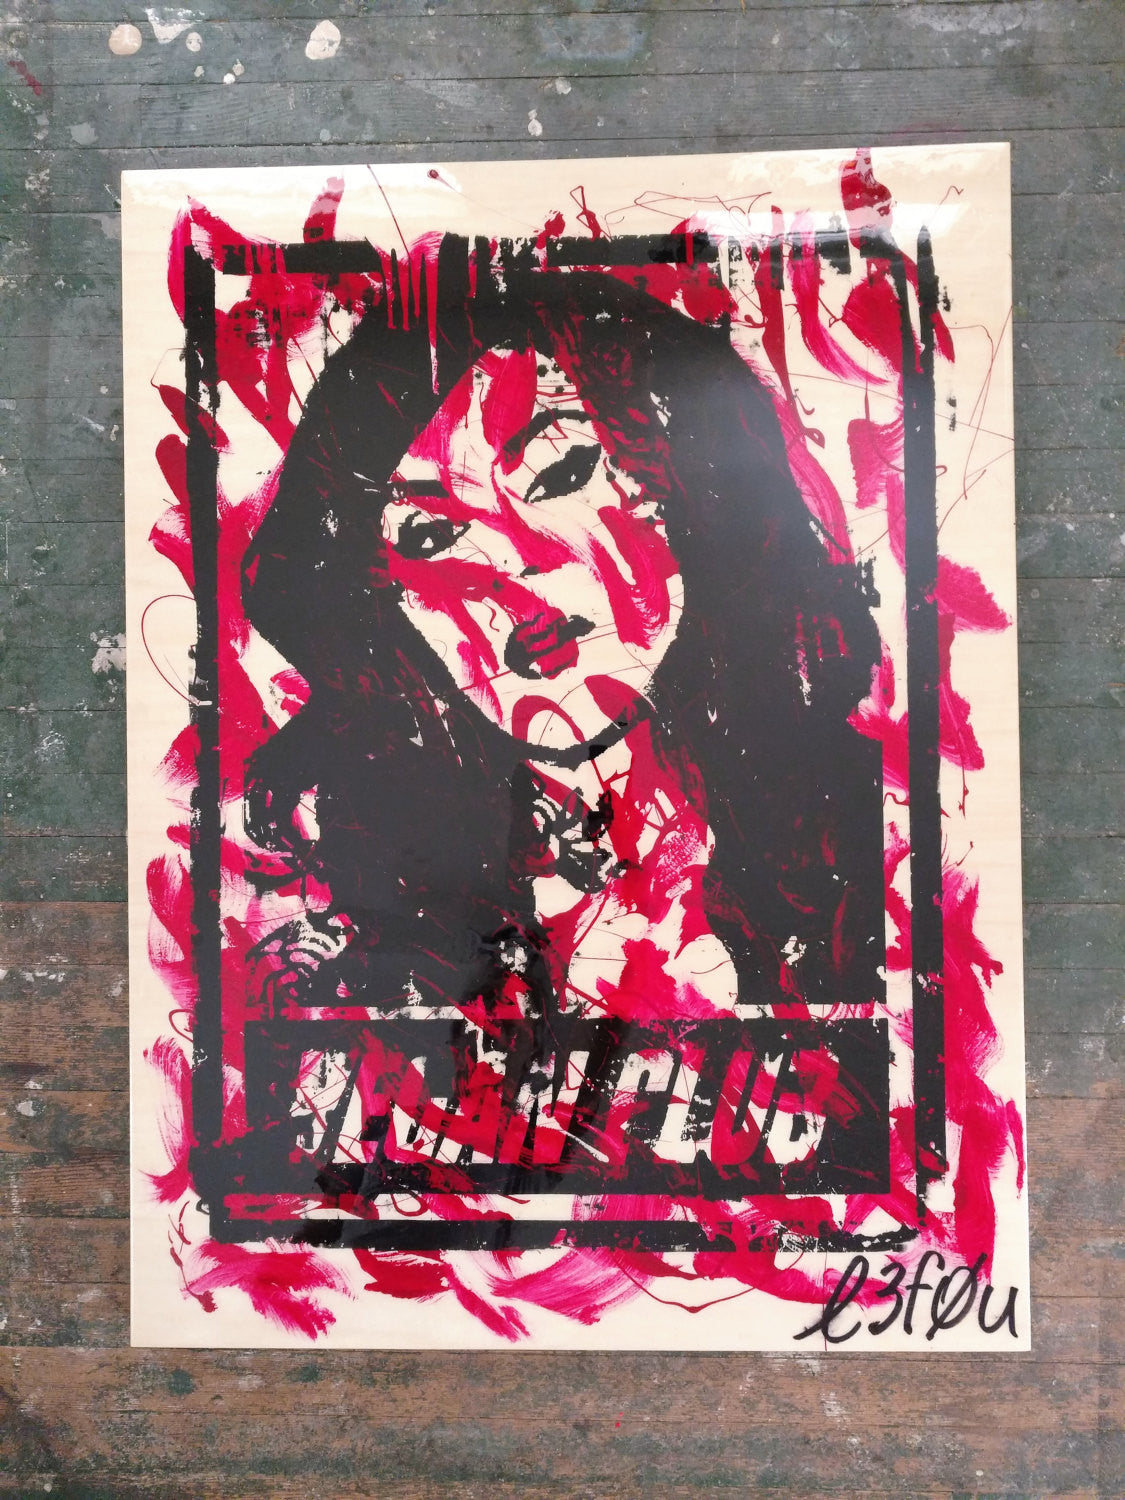 "30x40 Original Artwork ""Vegan Club"" featuring your fav vegan celeb Kat Von D signed L3F0u (2 of X)"